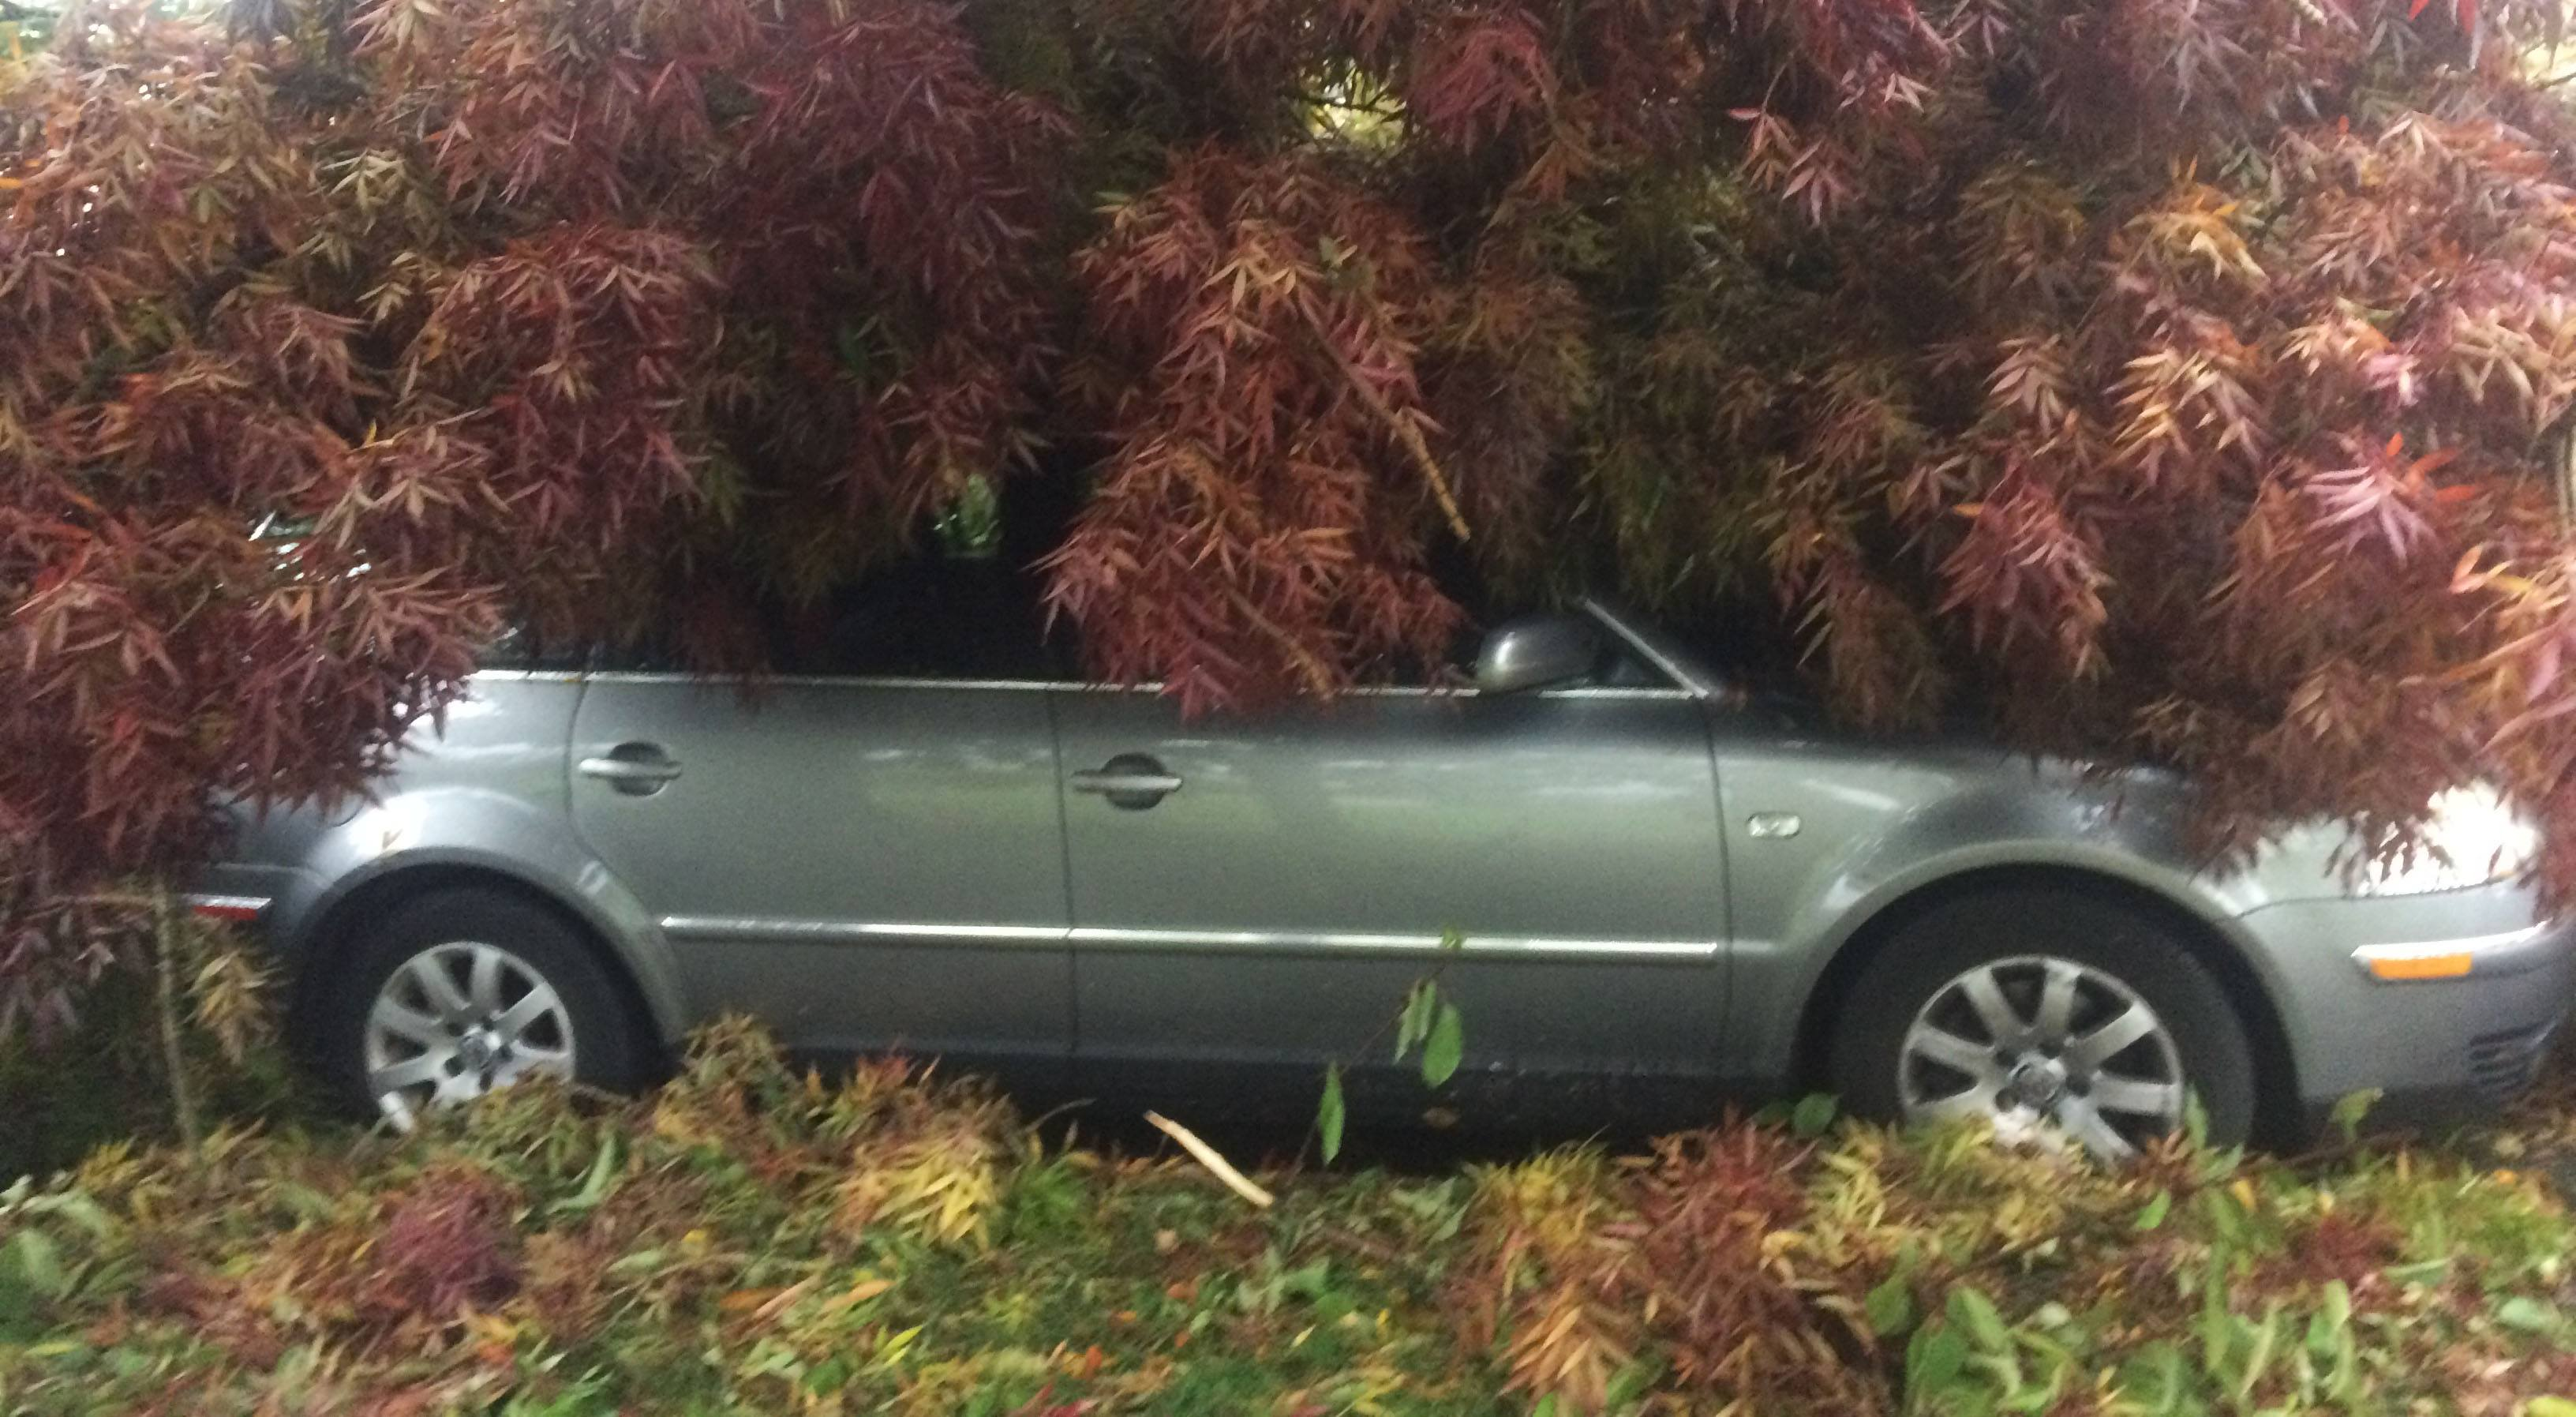 Car engulfed by tree during storm in East Vancouver (PHOTOS)